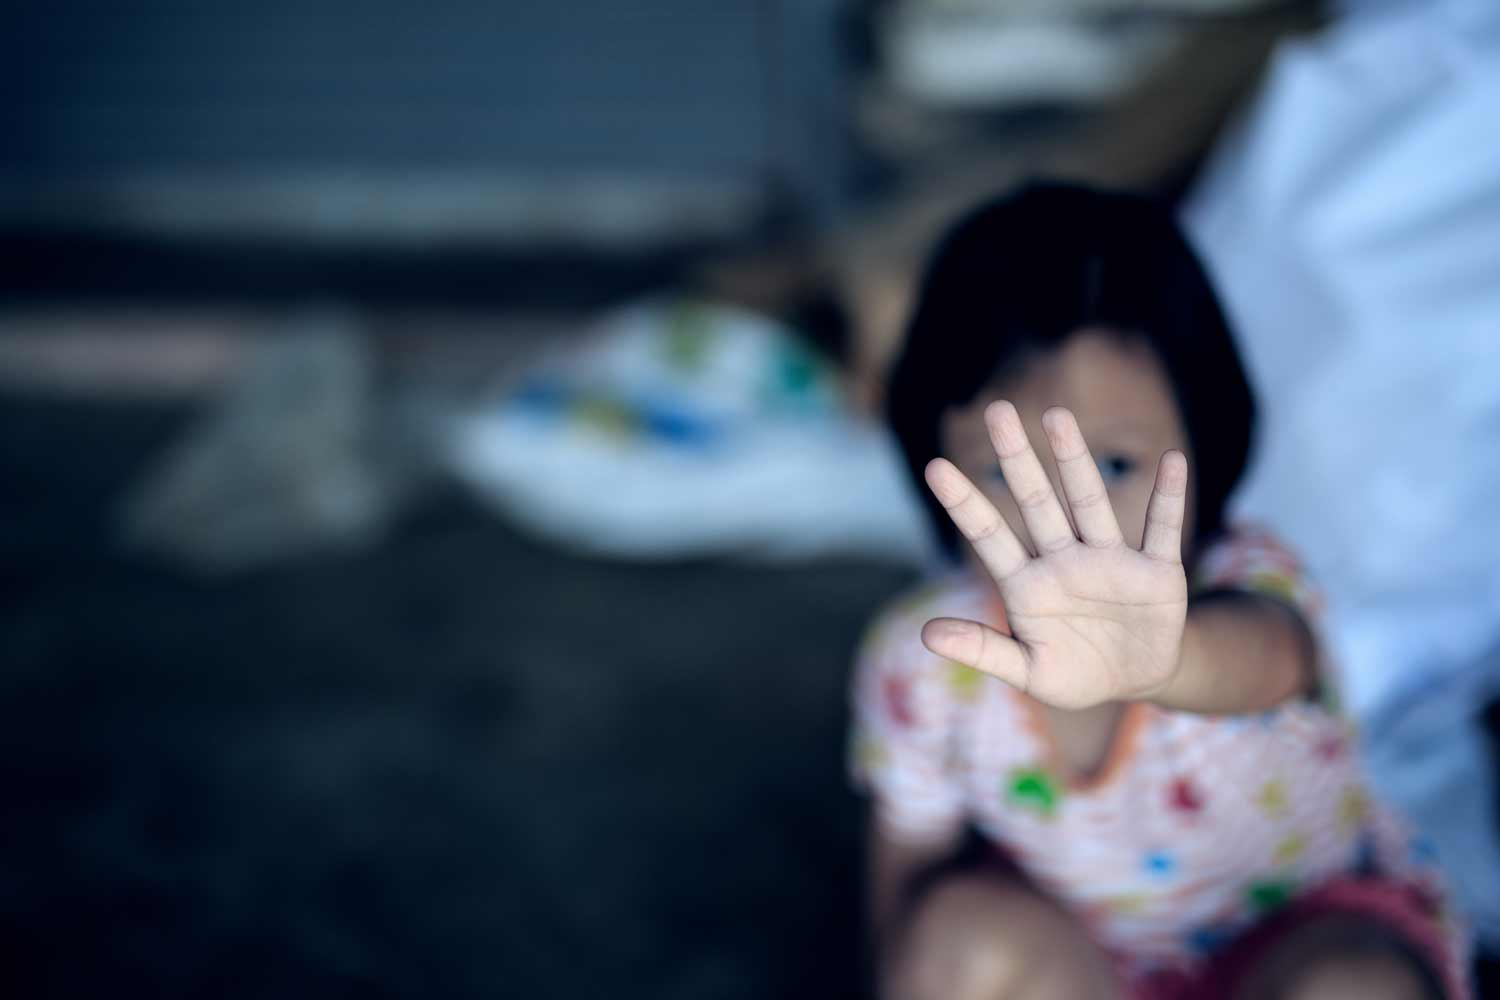 TIJ joins forces with five organizations to promote ethics and psychology for protection of children's rights